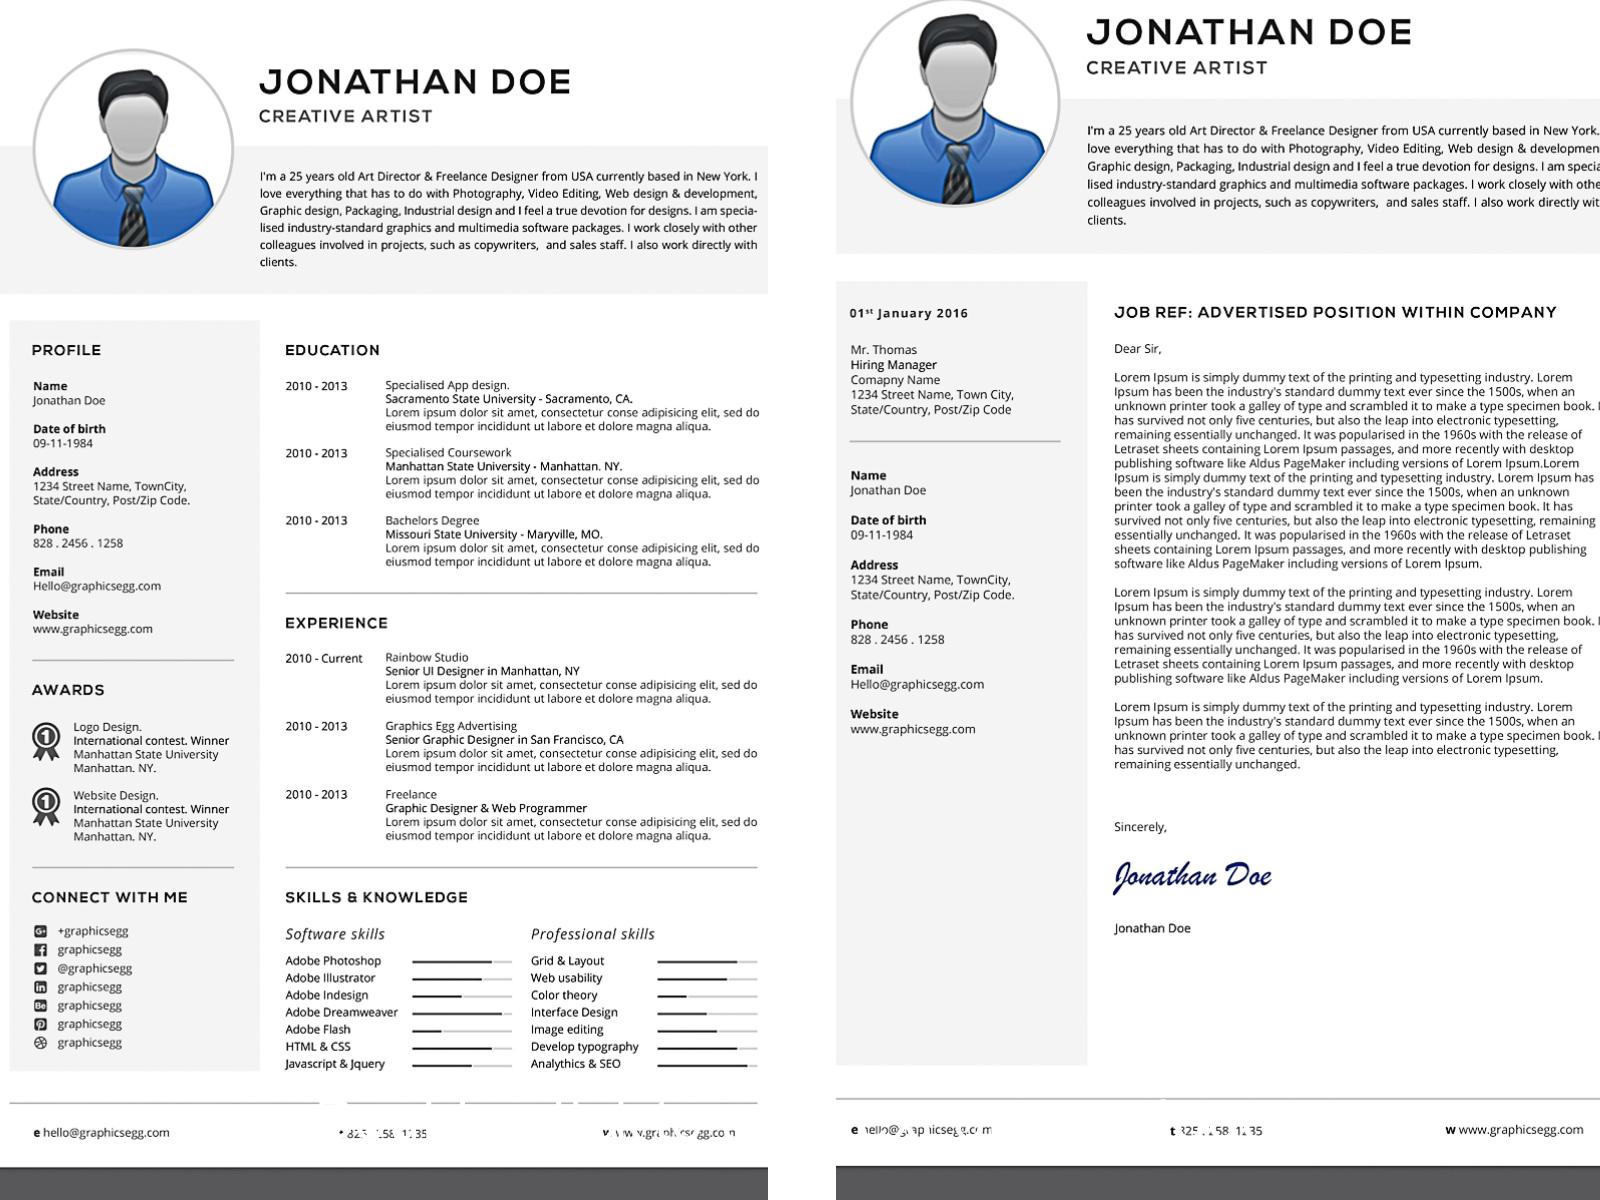 resume help example help make resume - Free Help With Resumes And Cover Letters